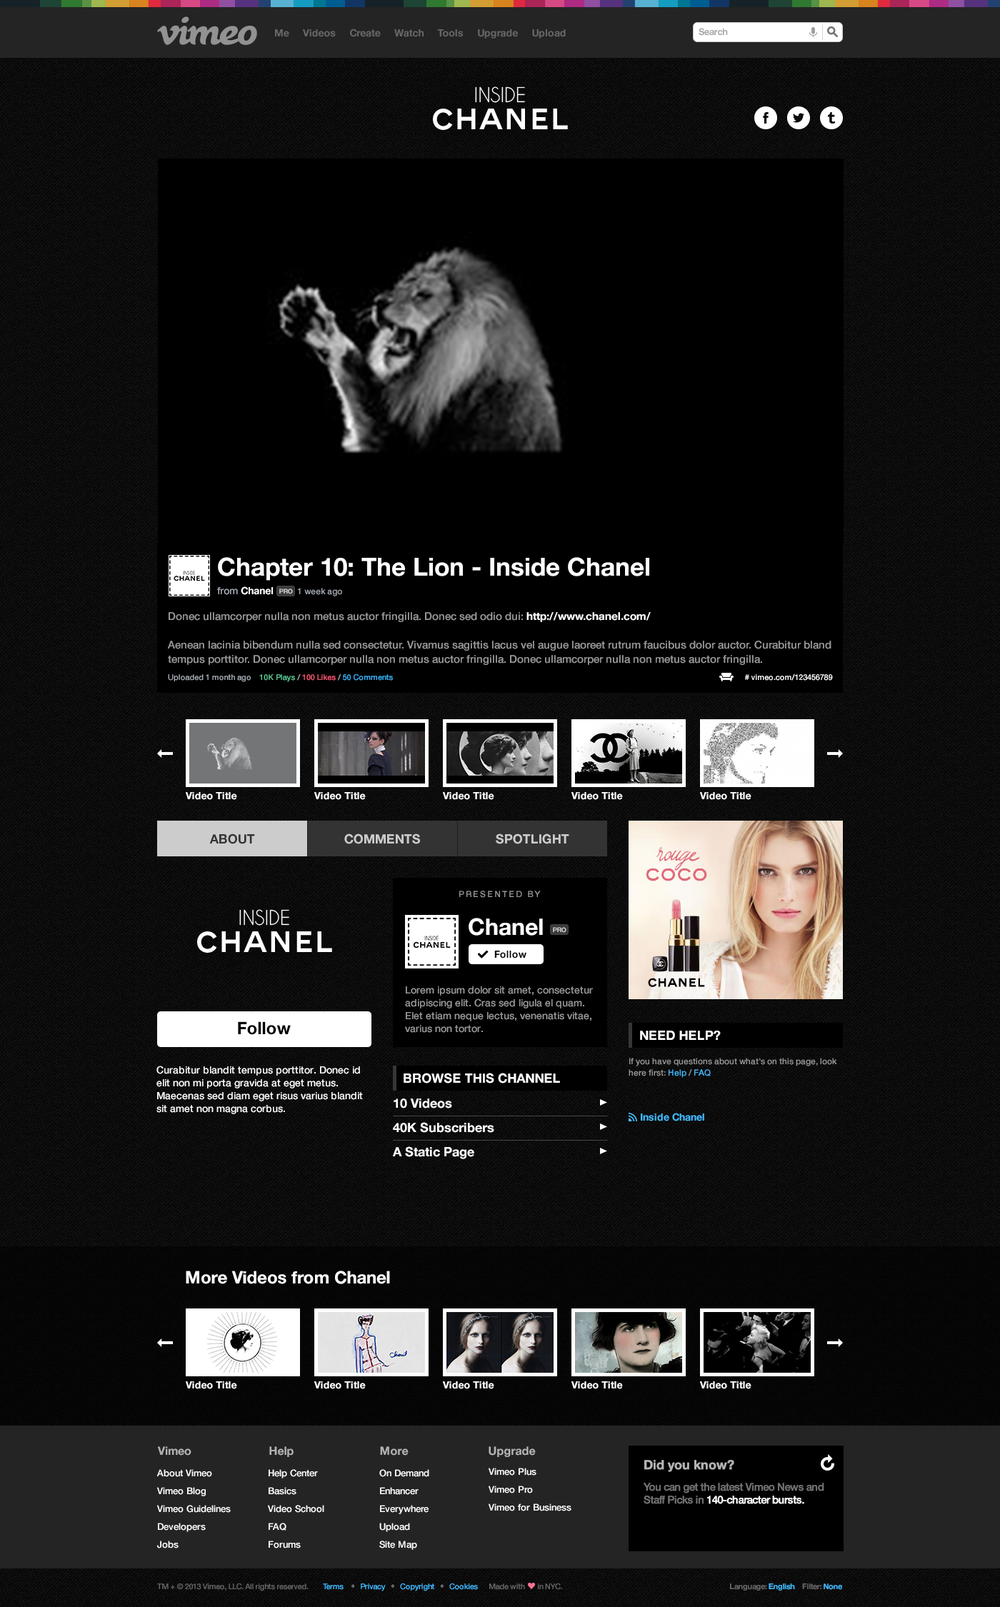 vimeo-campaign-pages-chanel.png